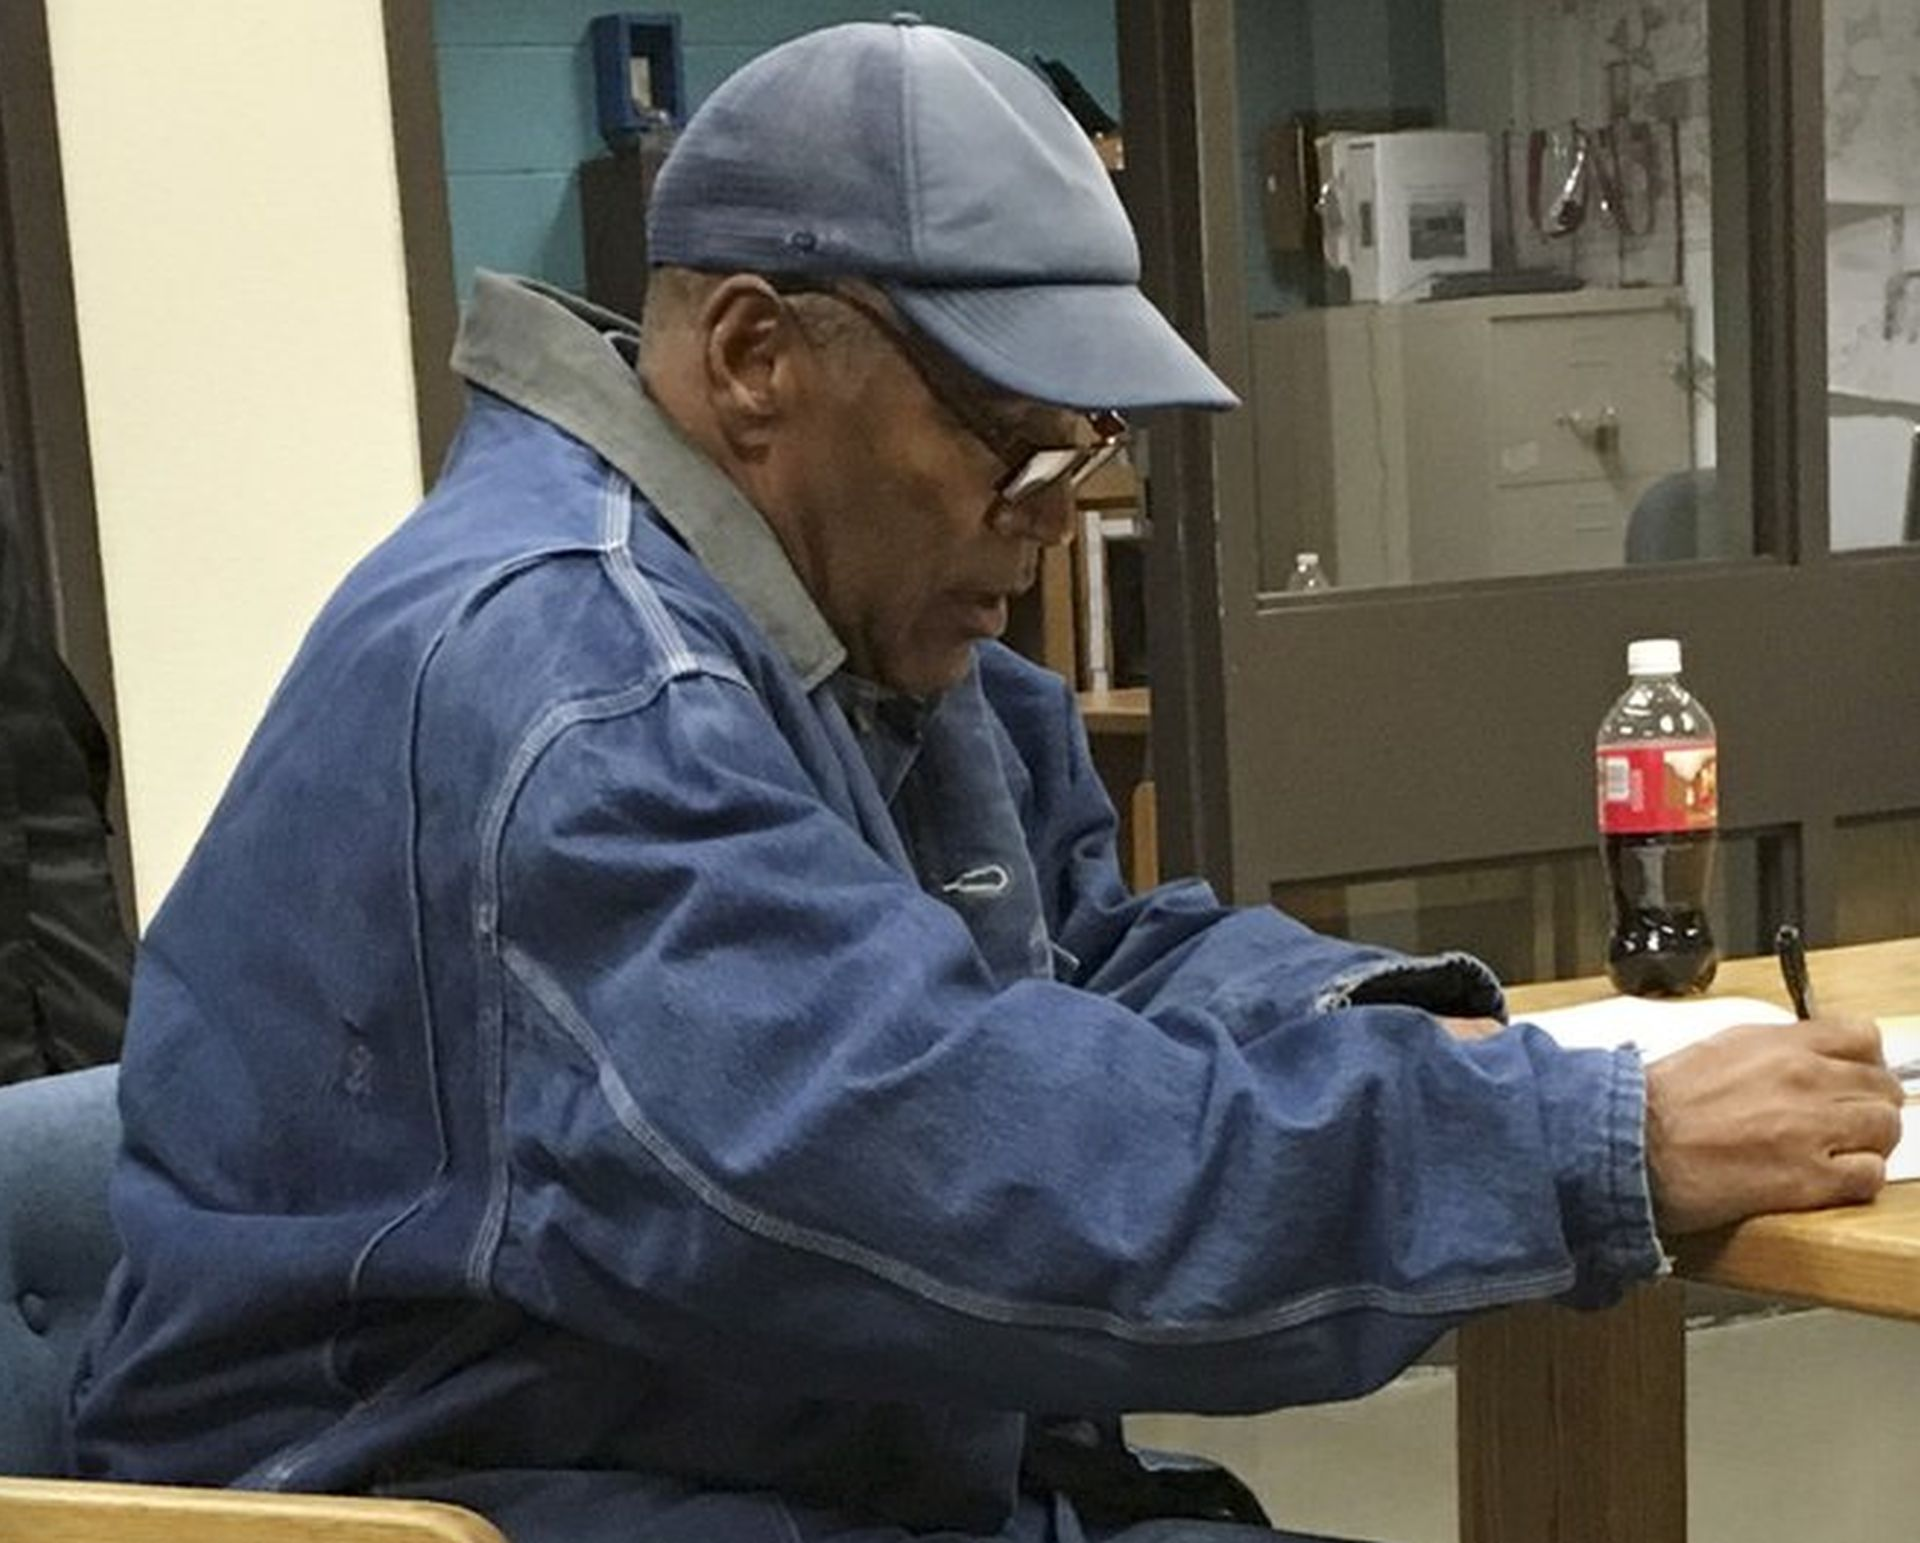 OJ Simpson signs documents regarding his release from the Lovelock Correctional Center in Nevada just before his release Sunday, Oct. 1, 2017. AP NEWSWIRE/Brooke Keast, via AP